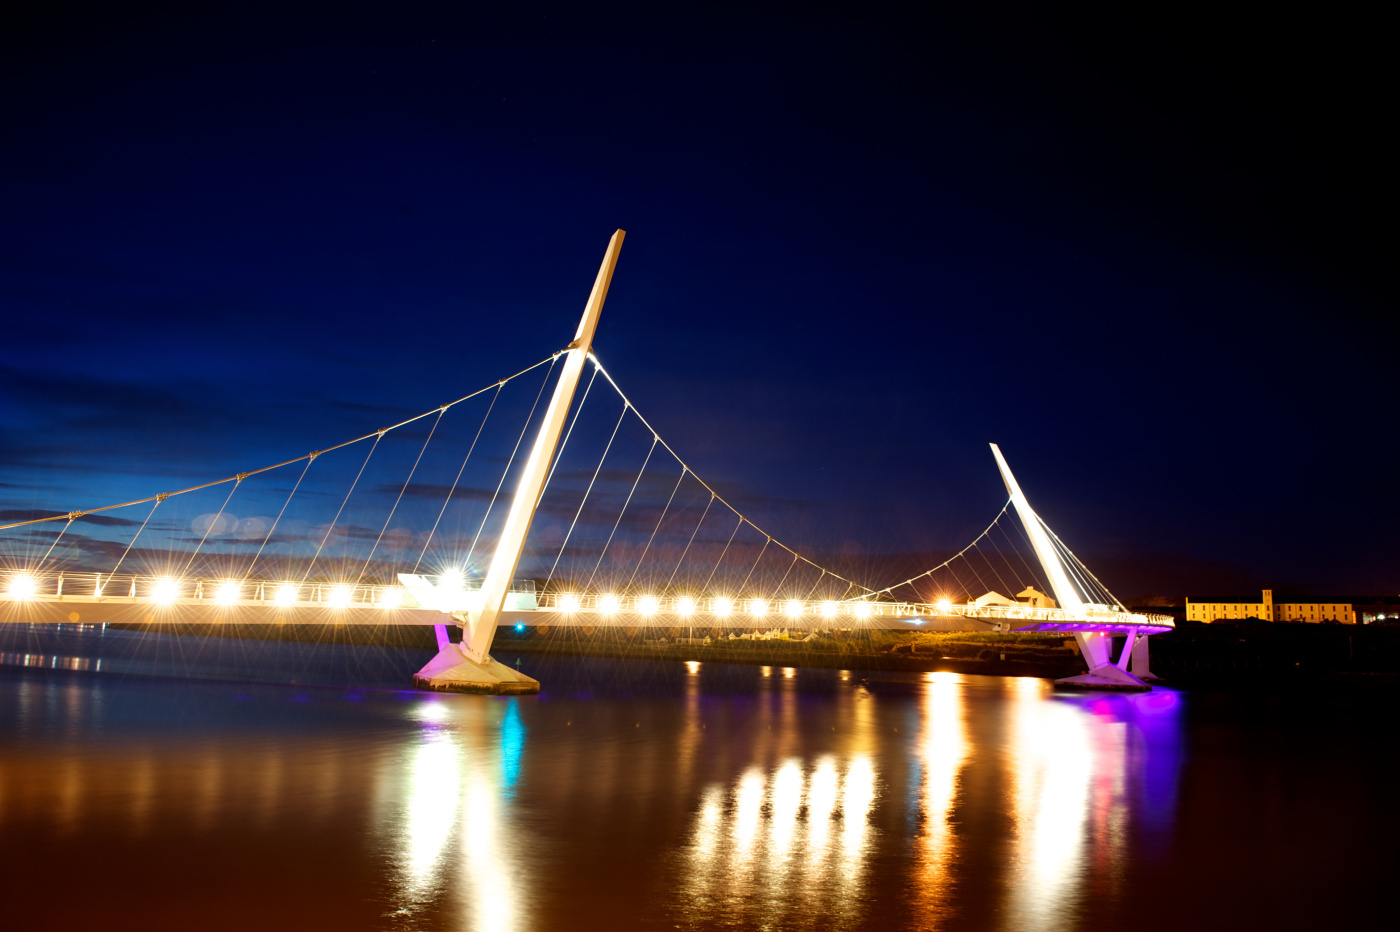 Derry's new peace bridge lights up the night sky as Derry prepares for it's opening next weekend. (1806SL01) Photo: Stephen Latimer